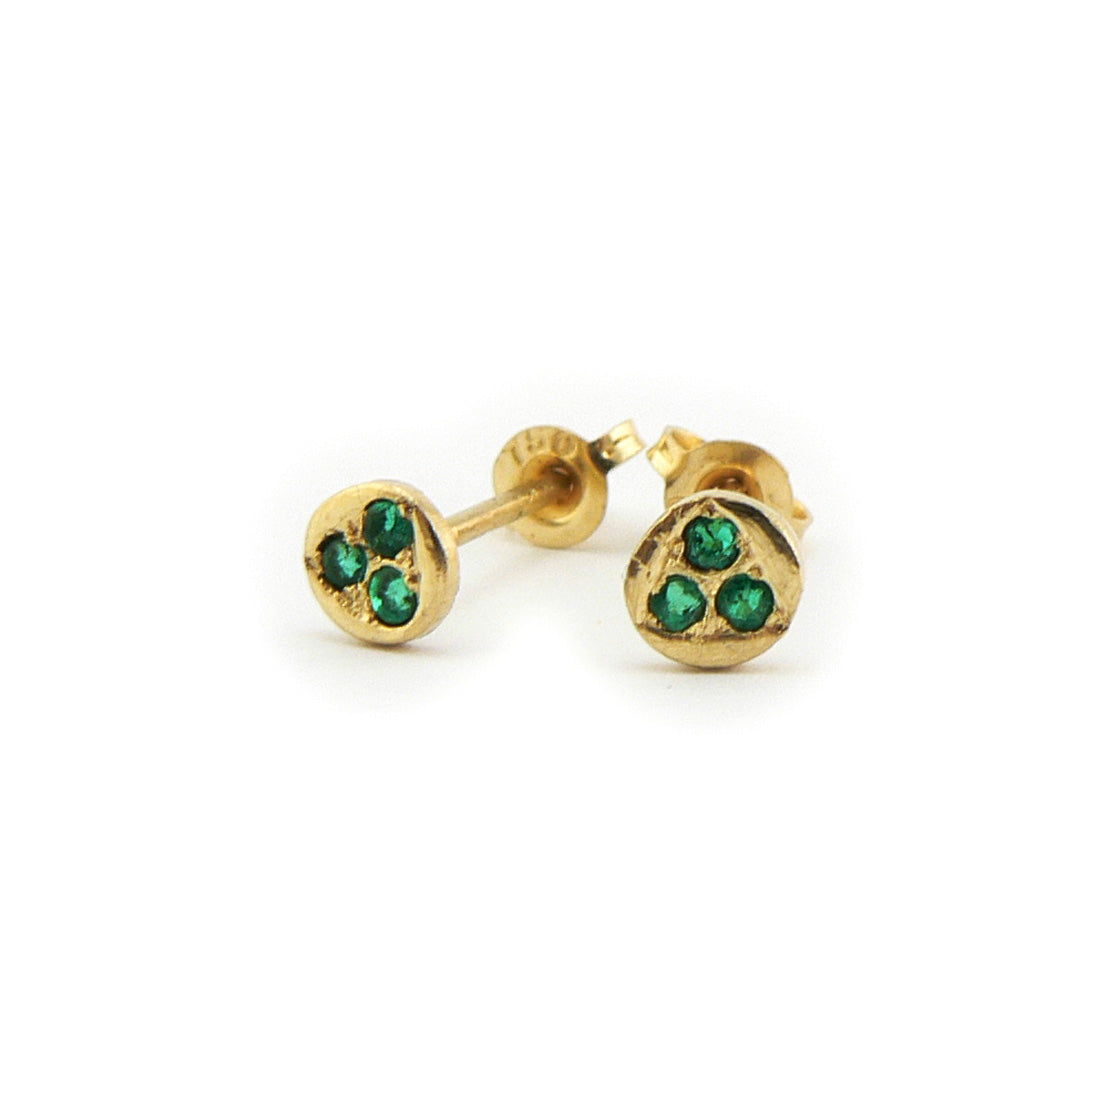 tsavorite earrings in 19ct yellow gold